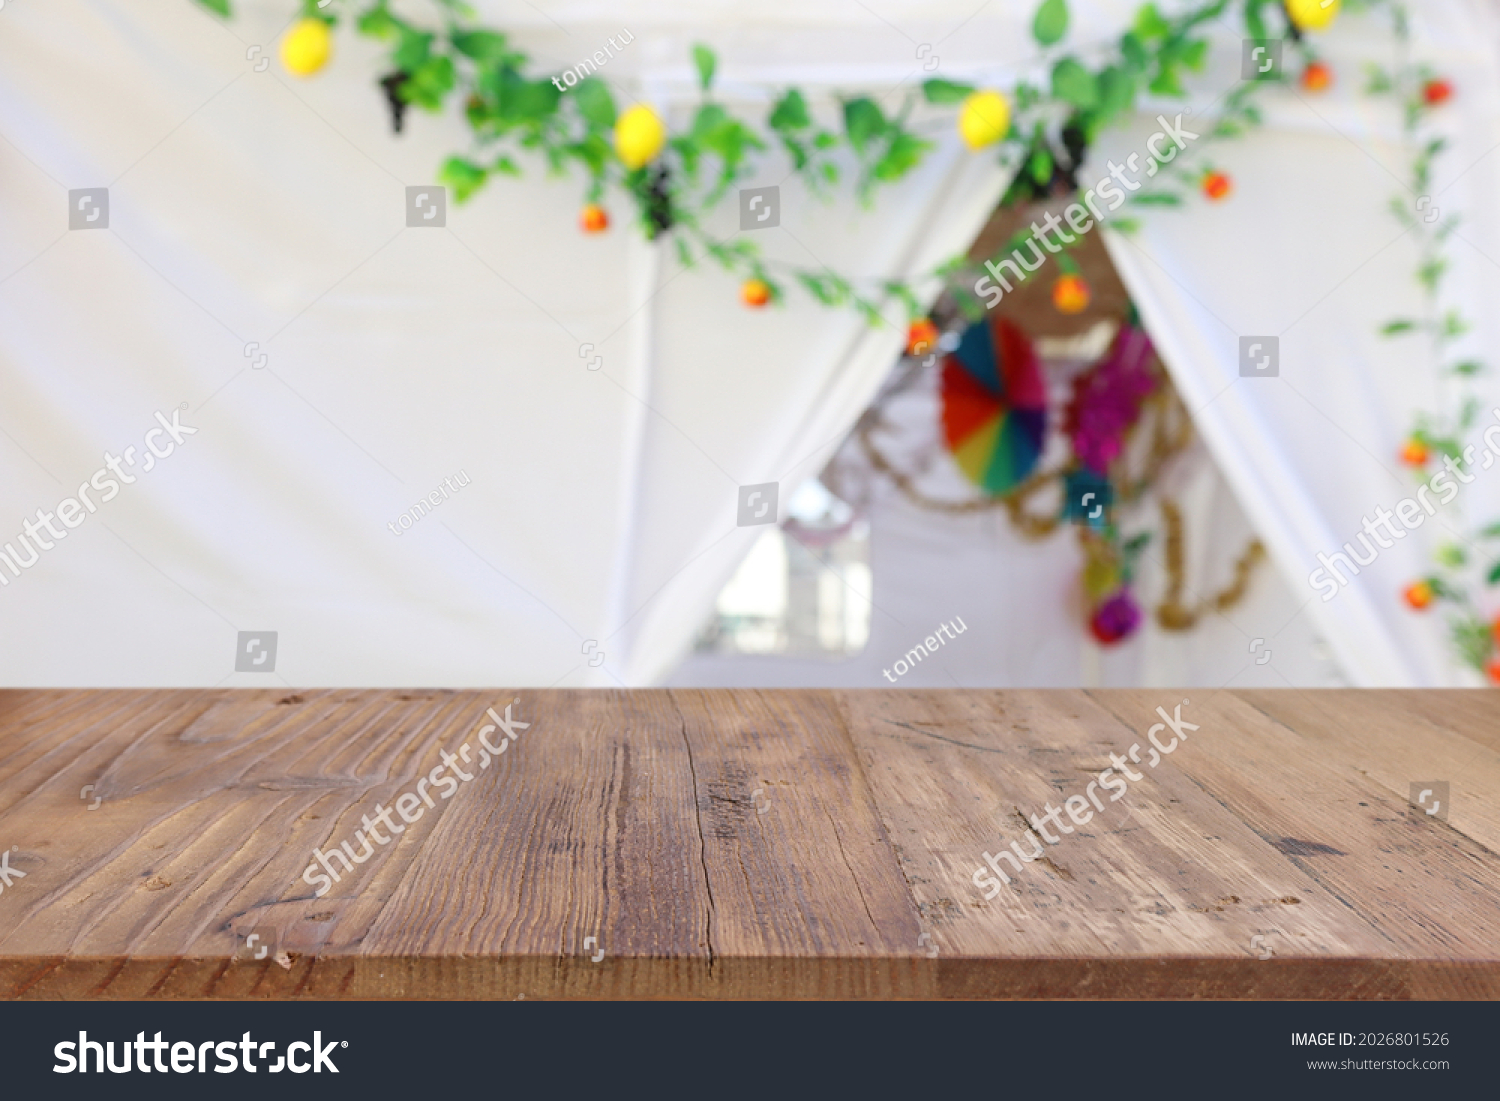 Jewish festival of Sukkot. Traditional succah (hut) with decorations. Empty wooden old table for product display and presentation. #2026801526